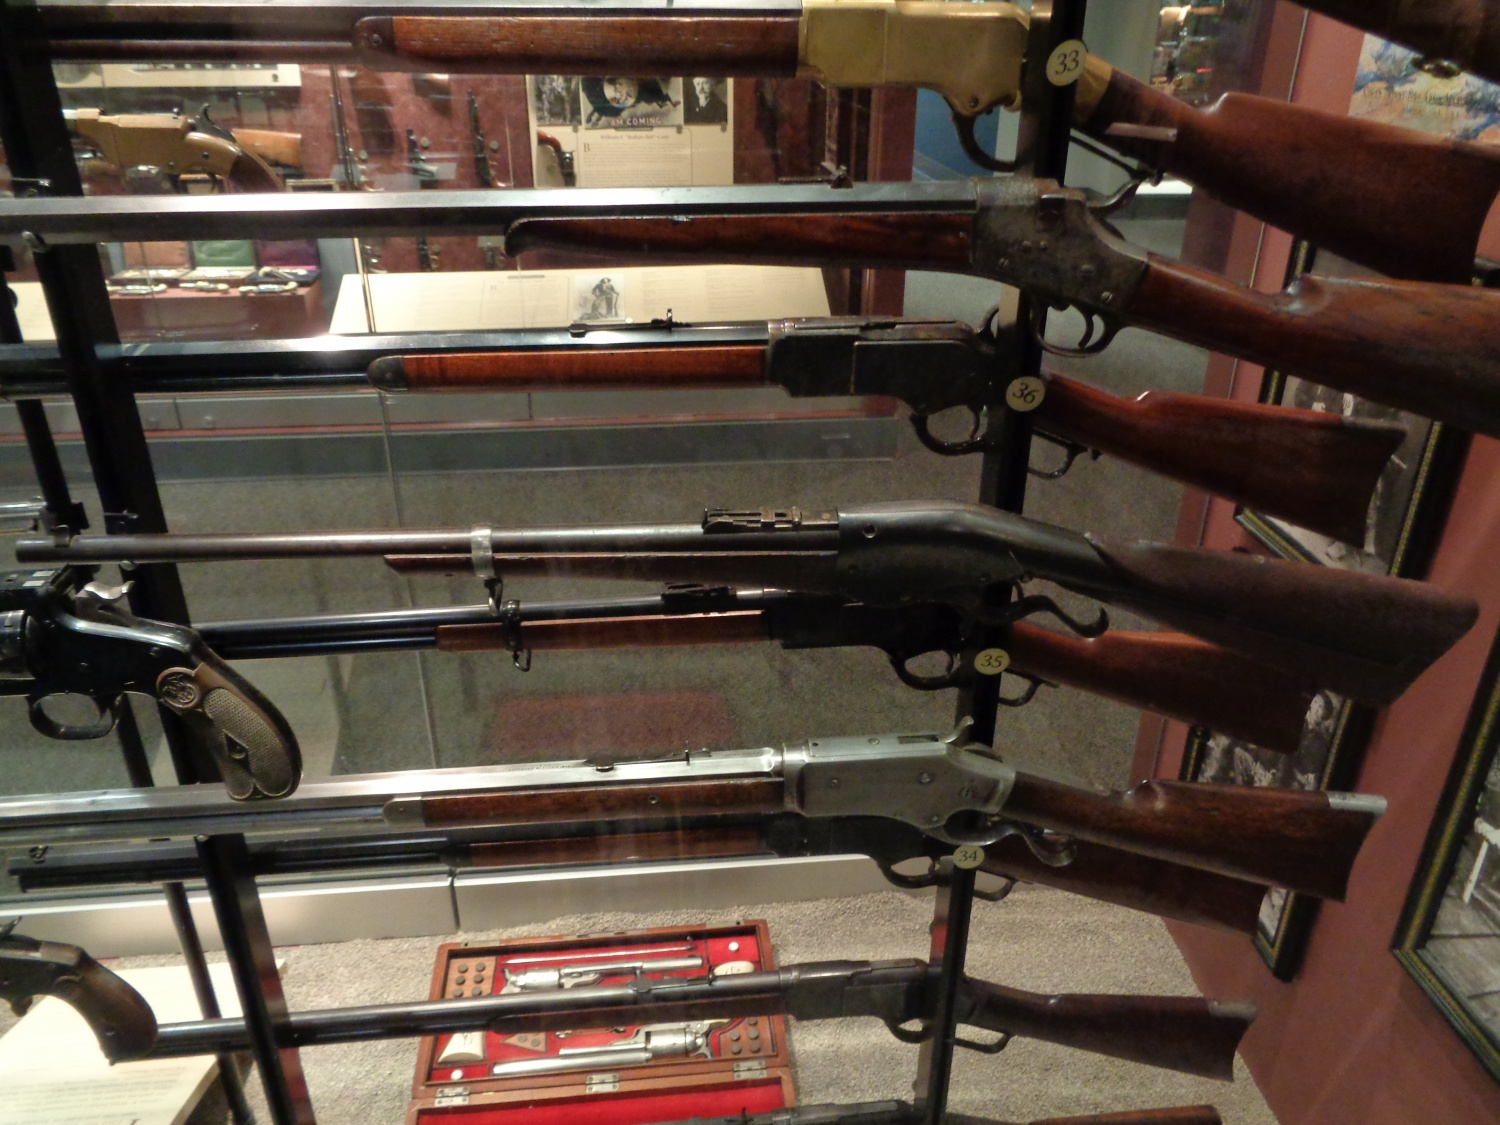 Teddy roosevelt guns to be displayed at nra national - A Significant Section Of The Museum Was Devoted To President Teddy Roosevelt Including This Display Of Guns Owned By The Roosevelt Family Children